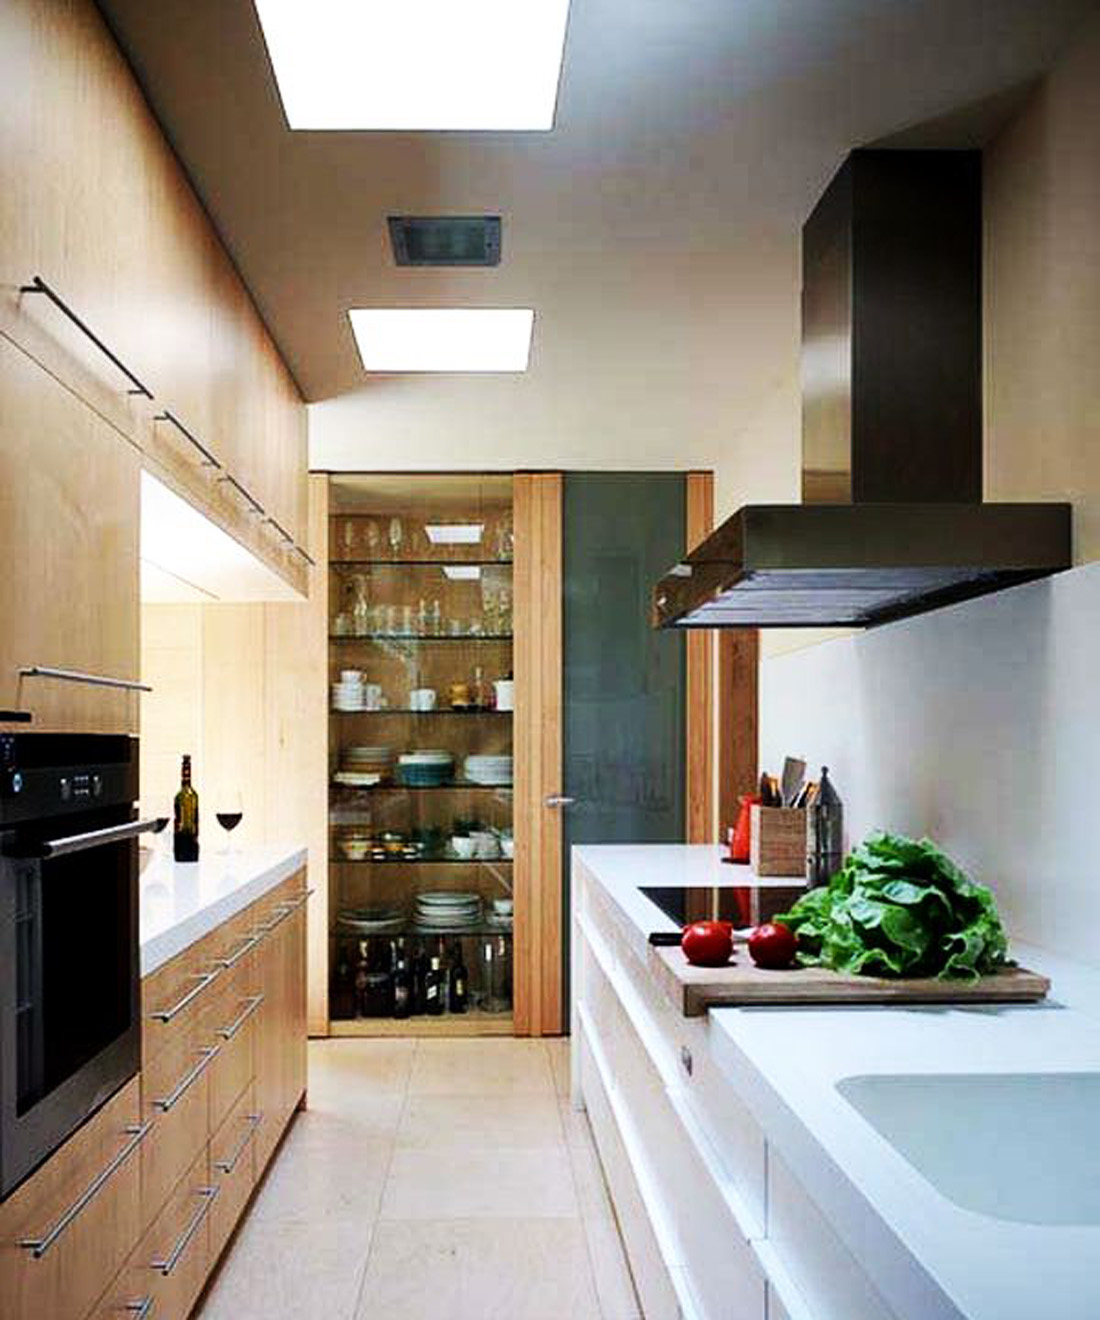 25 modern small kitchen design ideas for Small kitchen ideas photos